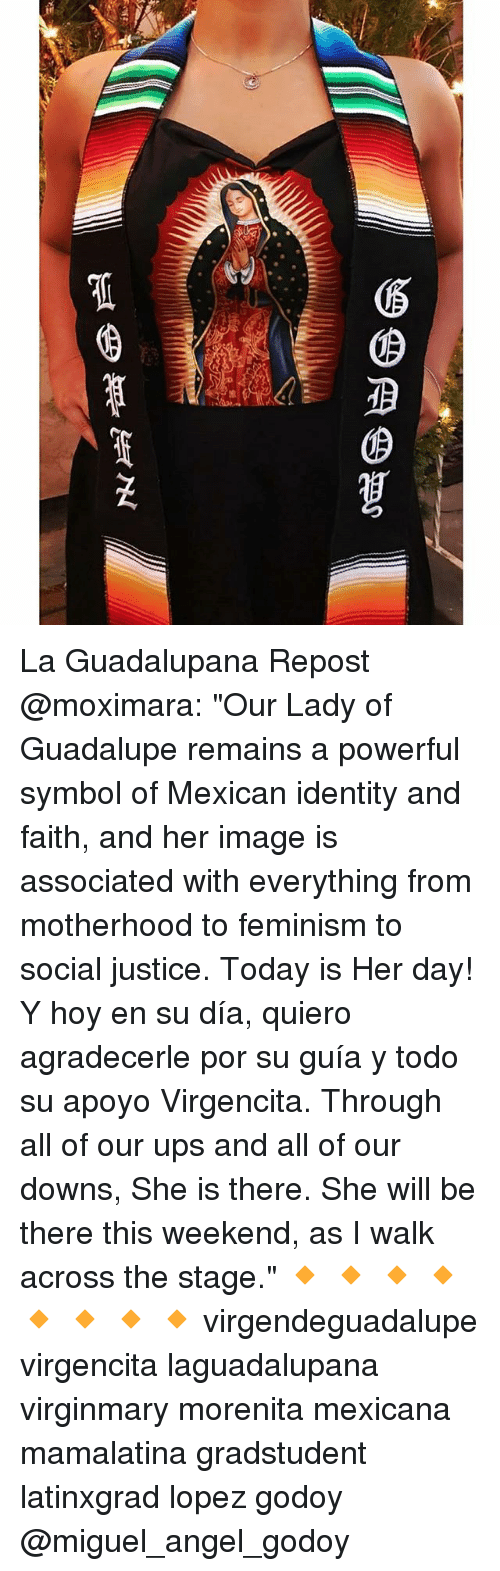 "Feminism, Memes, and Ups: La Guadalupana Repost @moximara: ""Our Lady of Guadalupe remains a powerful symbol of Mexican identity and faith, and her image is associated with everything from motherhood to feminism to social justice. Today is Her day! Y hoy en su día, quiero agradecerle por su guía y todo su apoyo Virgencita. Through all of our ups and all of our downs, She is there. She will be there this weekend, as I walk across the stage."" 🔸 🔸 🔸 🔸 🔸 🔸 🔸 🔸 virgendeguadalupe virgencita laguadalupana virginmary morenita mexicana mamalatina gradstudent latinxgrad lopez godoy @miguel_angel_godoy"